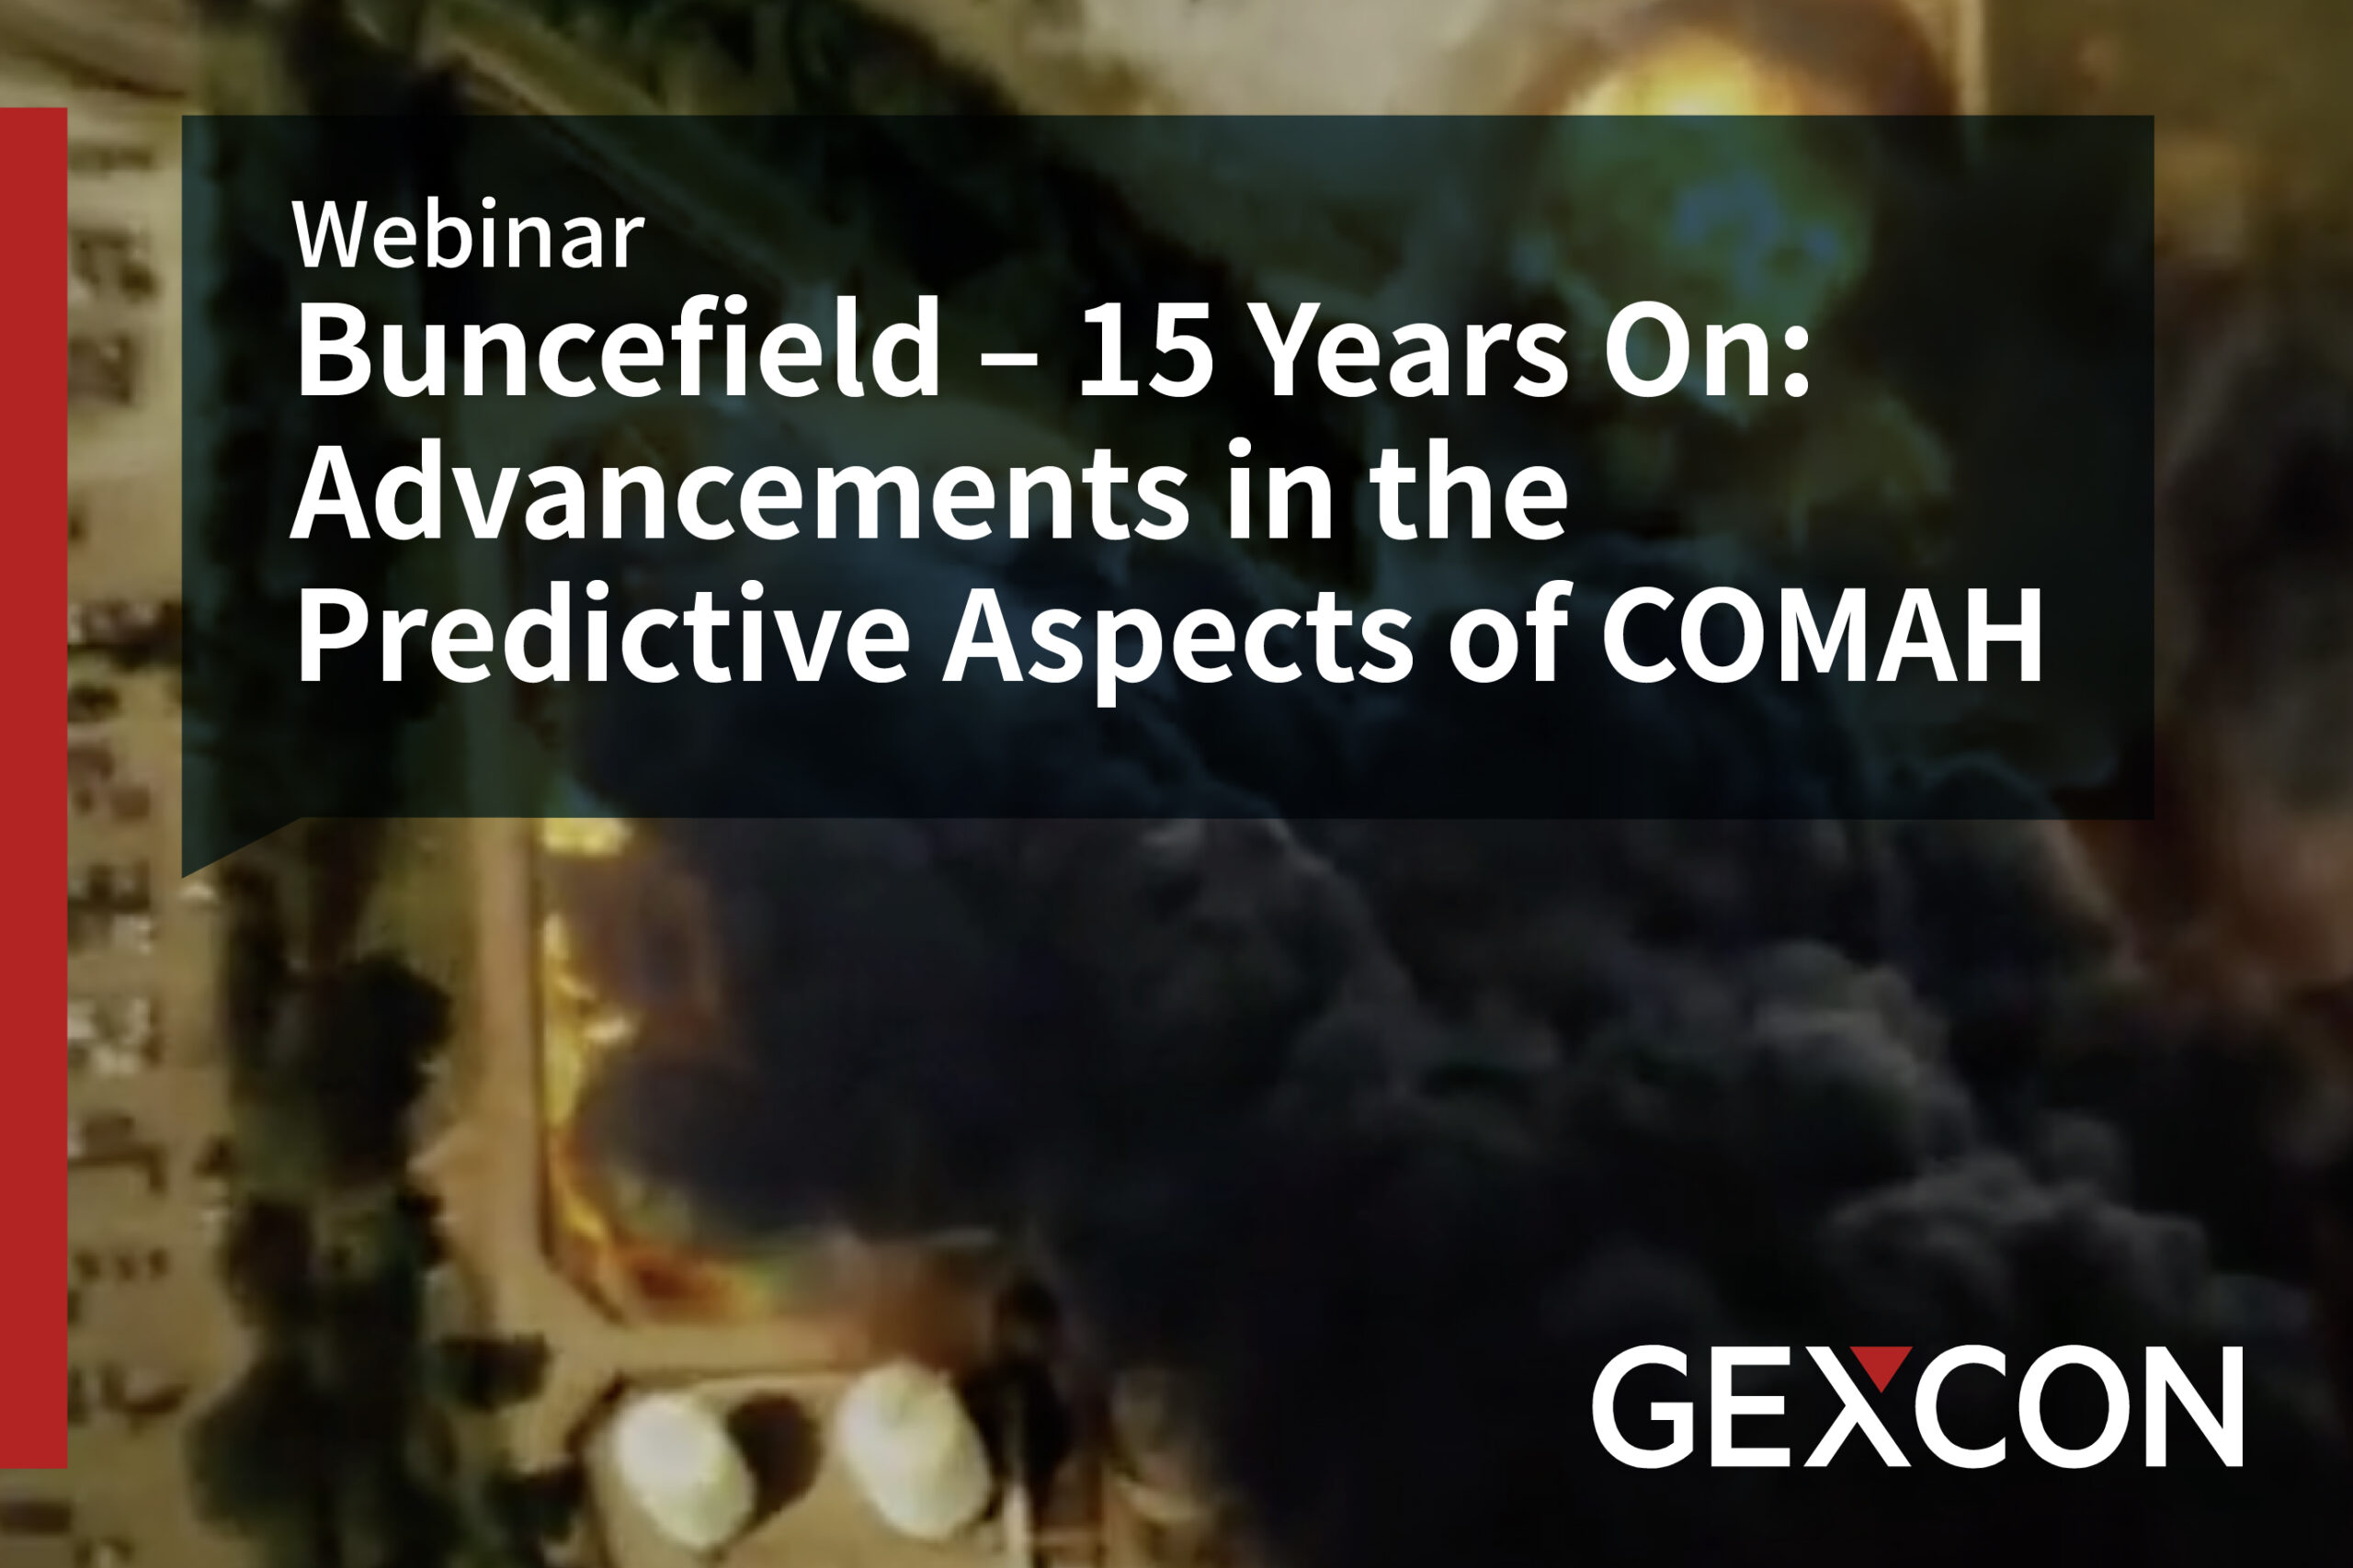 Webinar - Buncefield – 15 Years On: Advancements in the Predictive Aspects of COMAH